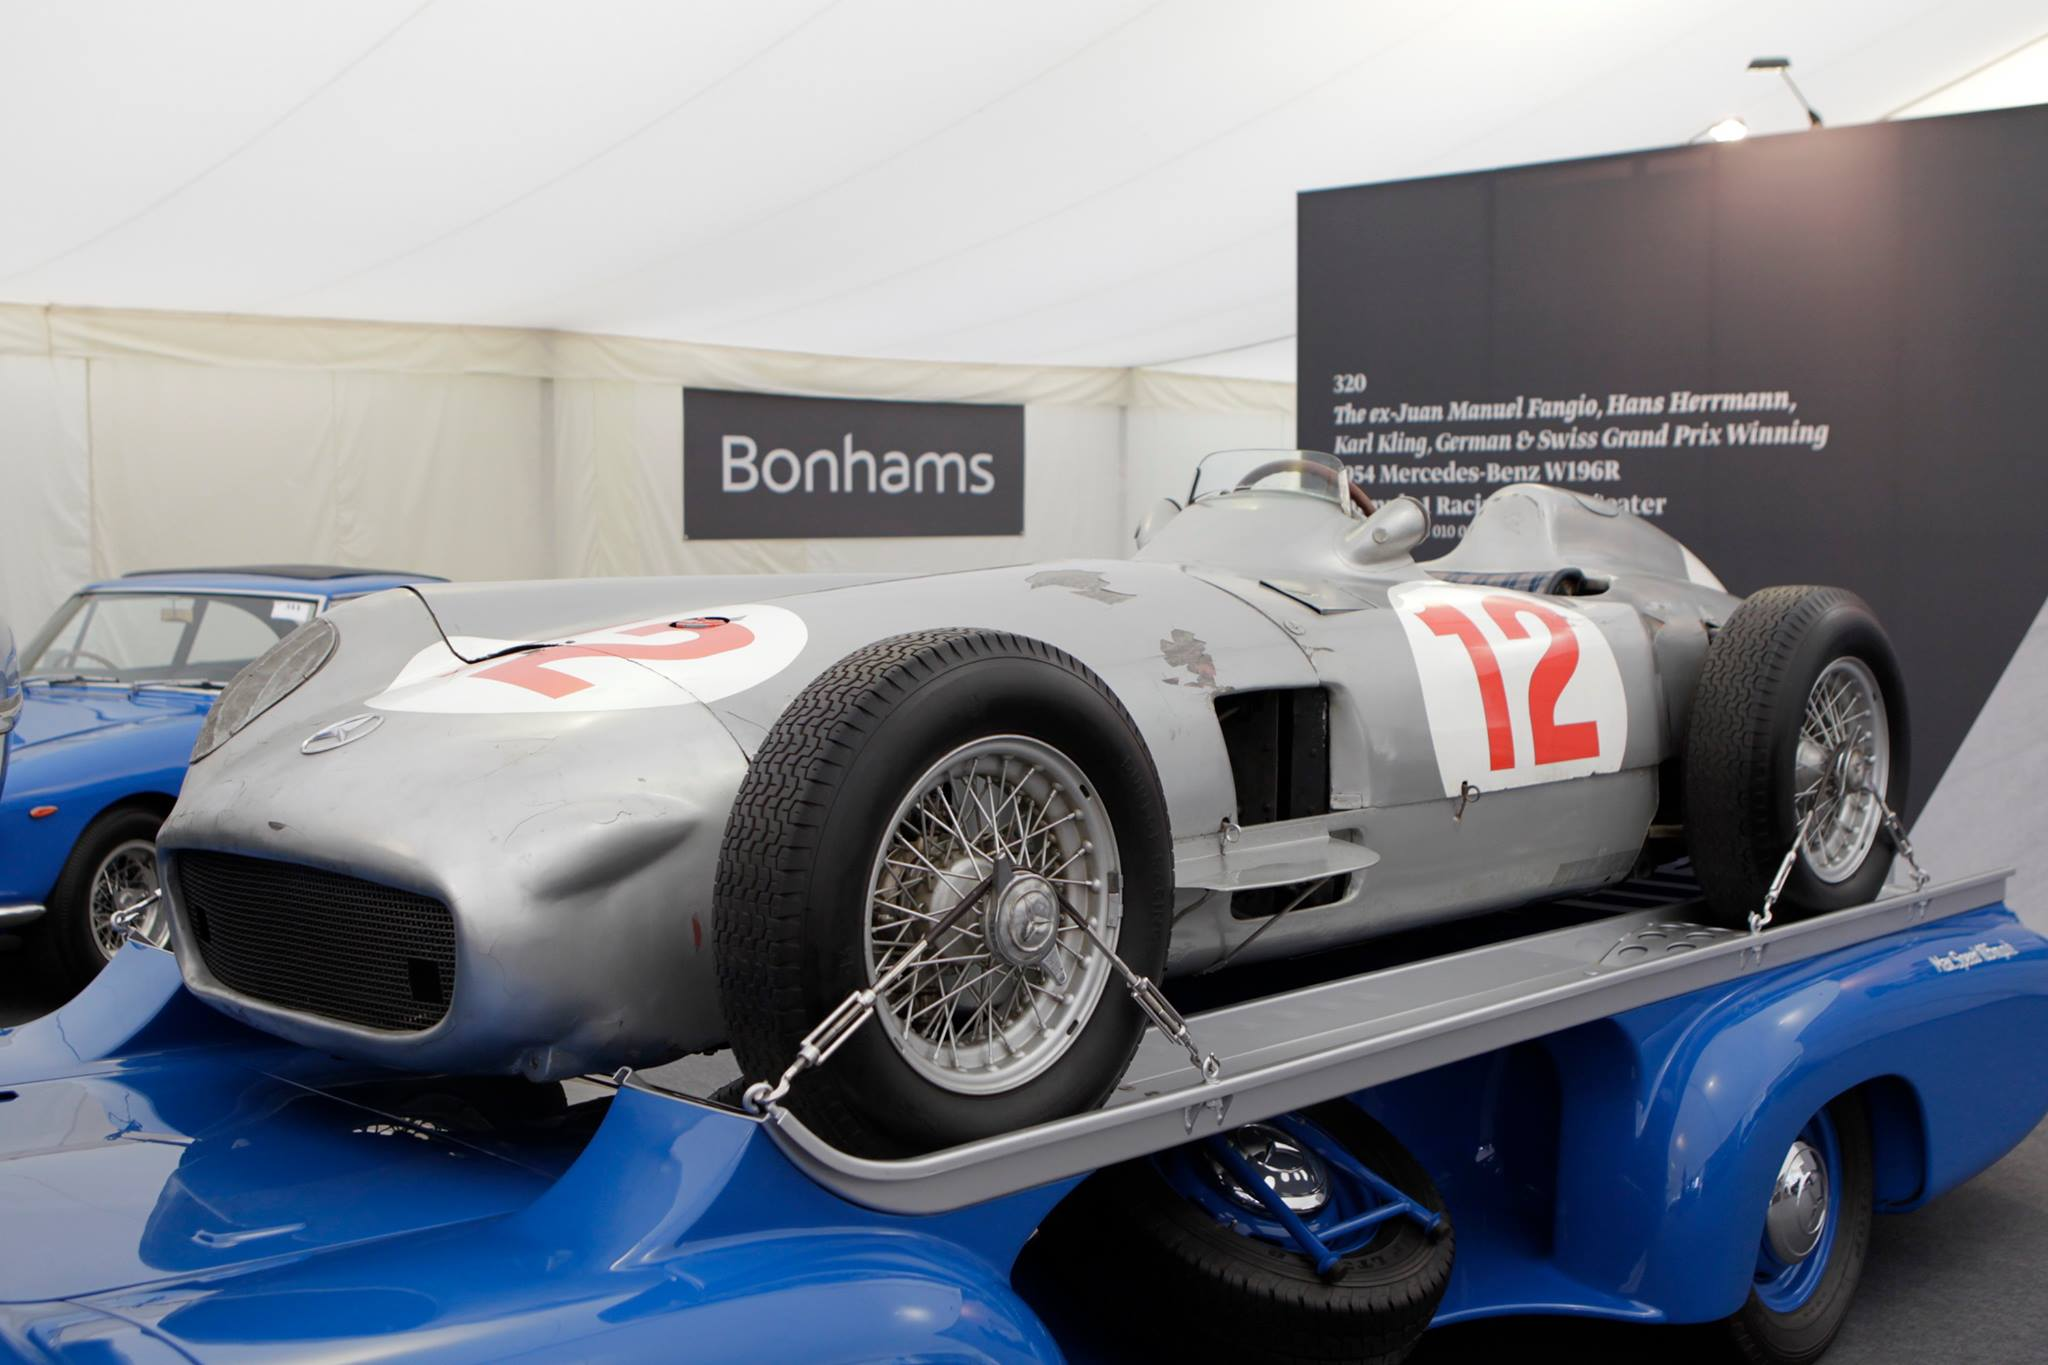 Fangio 39 s mercedes benz 1954 f1 car sold for 29 7 million for Mercedes benz f1